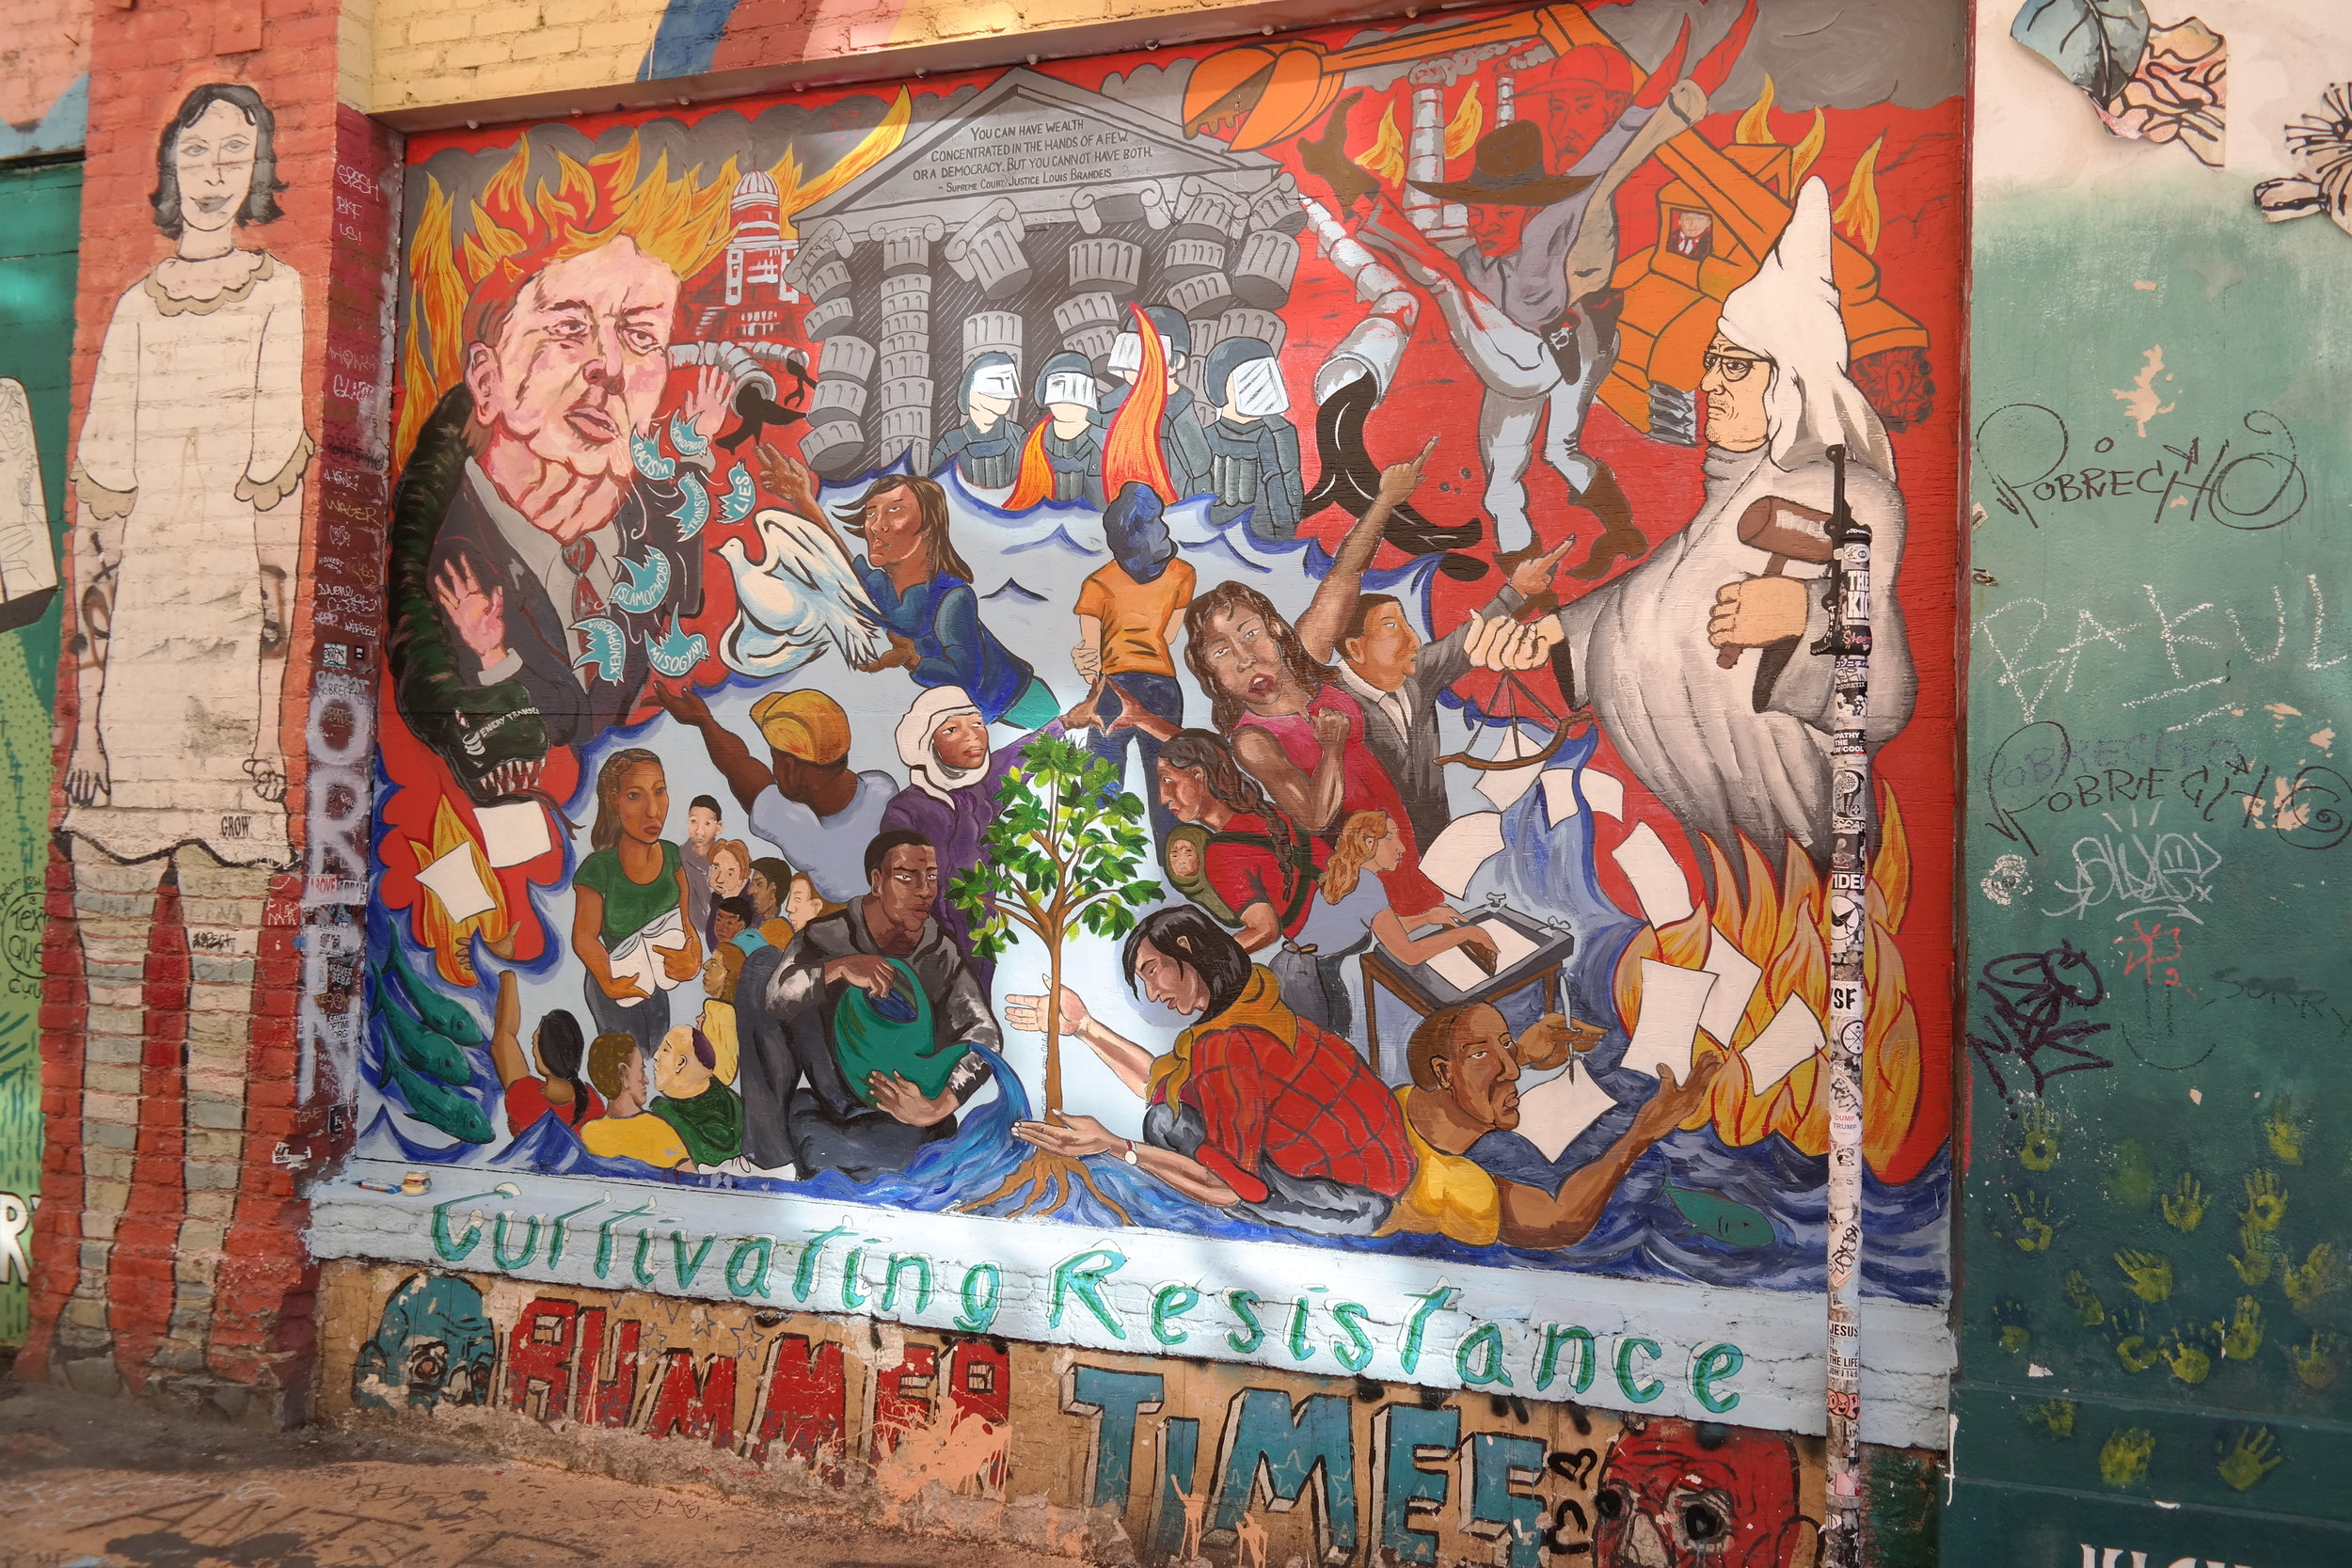 Another political mural in Clarion Alley.